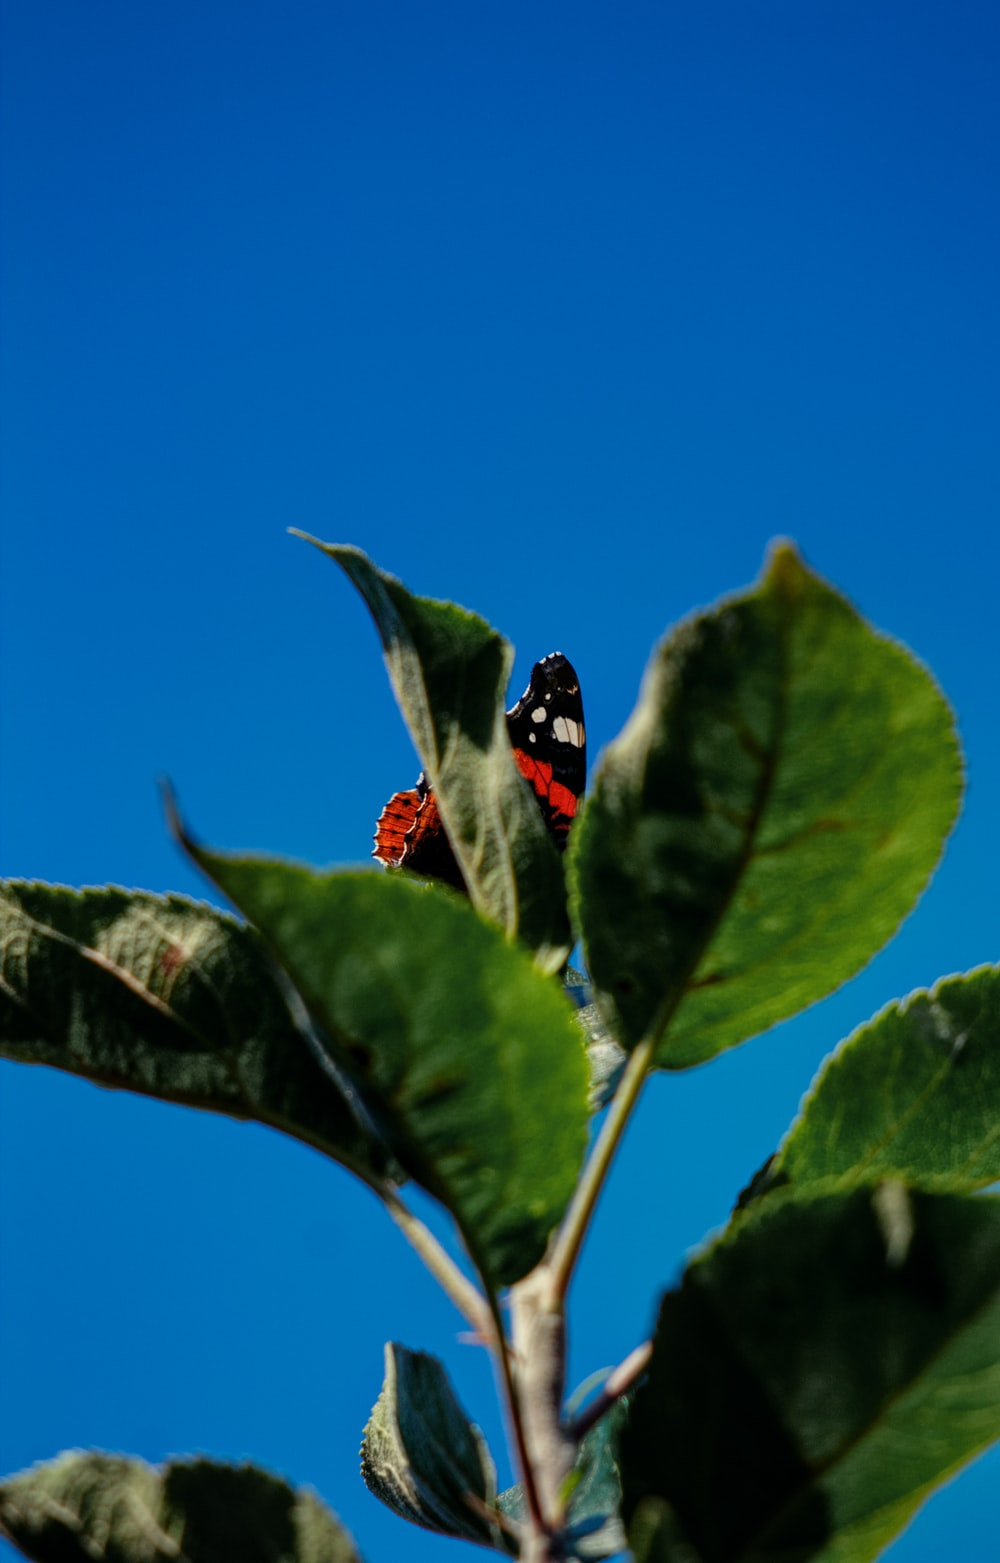 red and black butterfly perching on green leafed plant